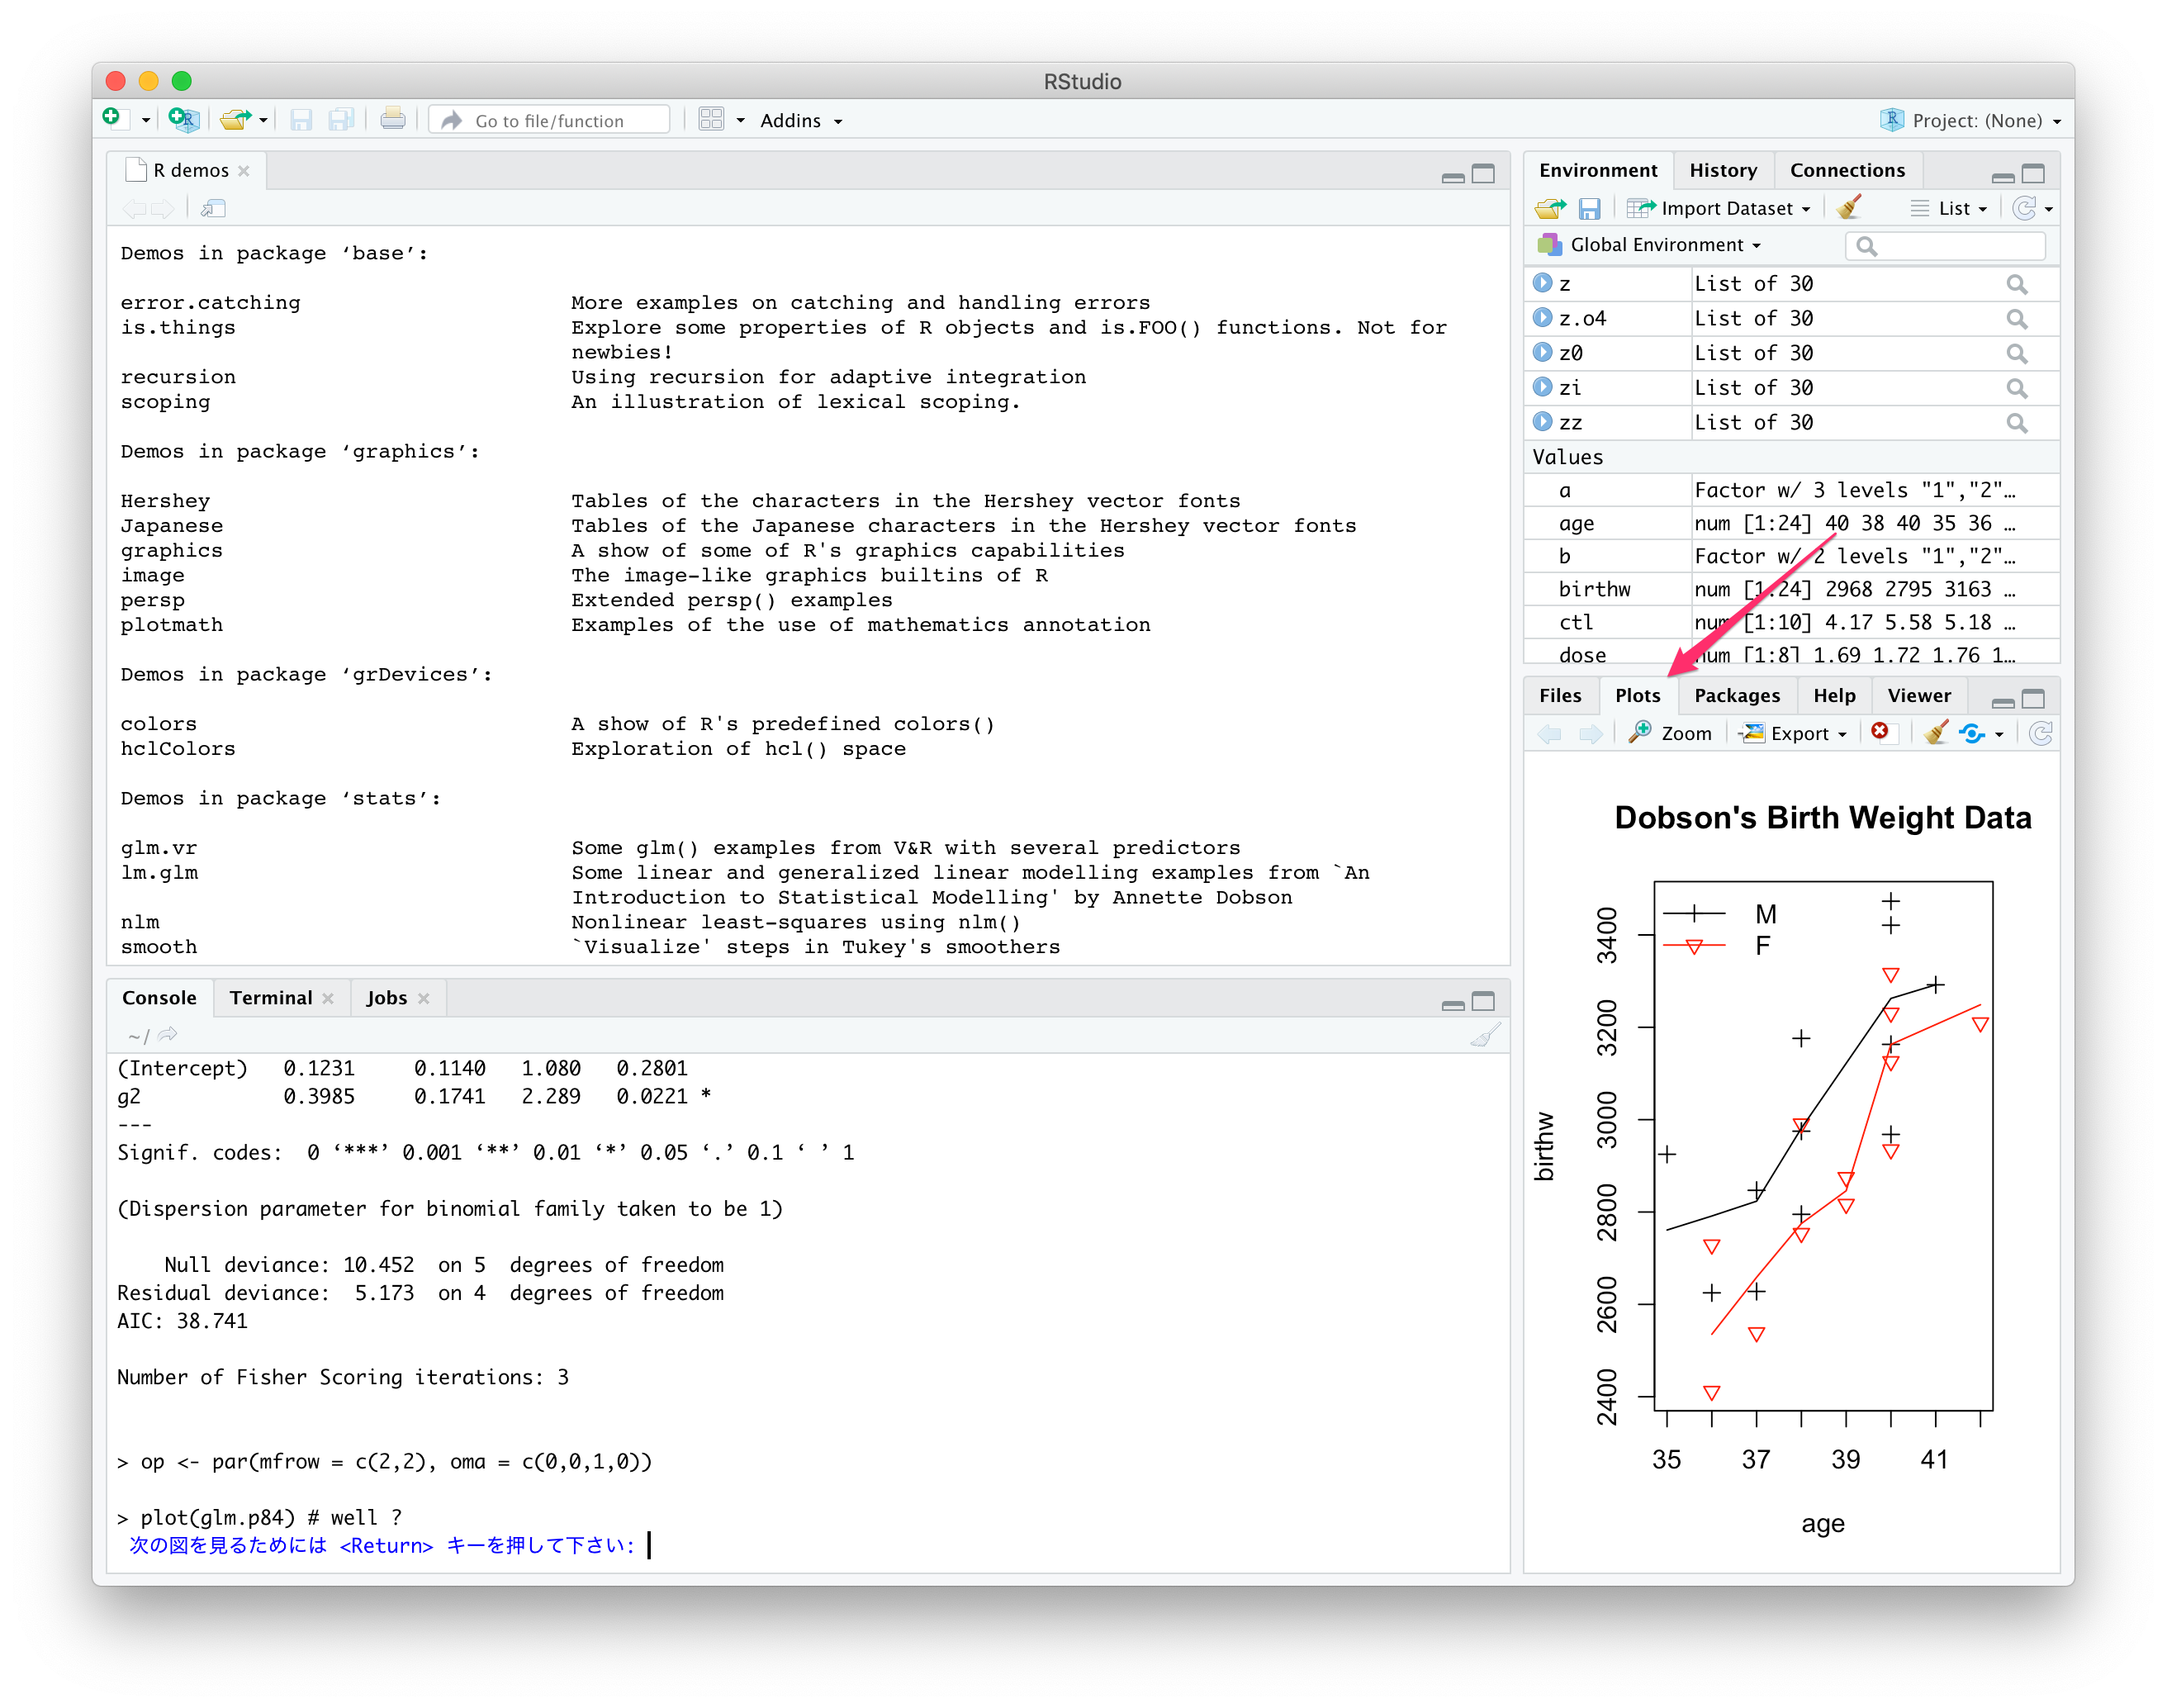 rstudio-demo-lmglm.png